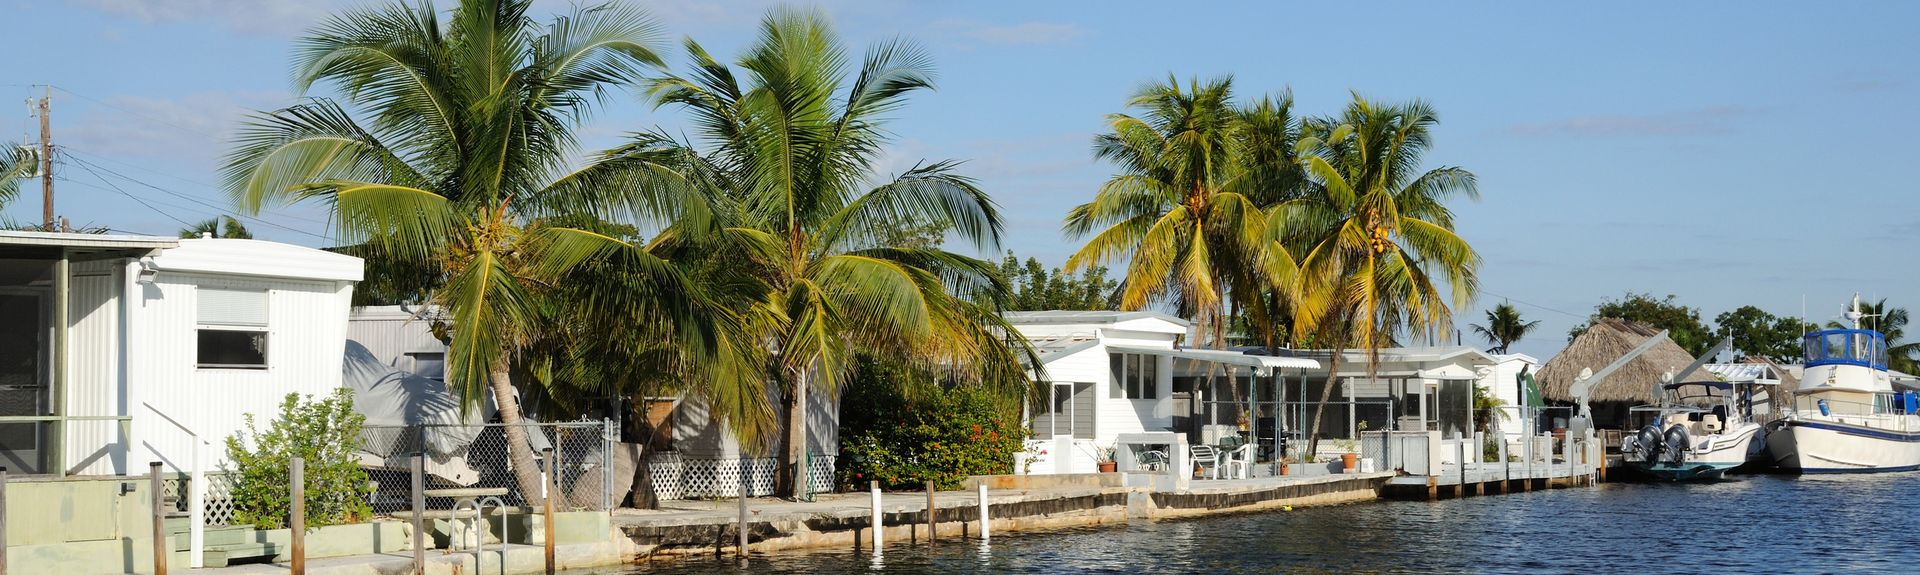 Key Largo, Florida, Estados Unidos